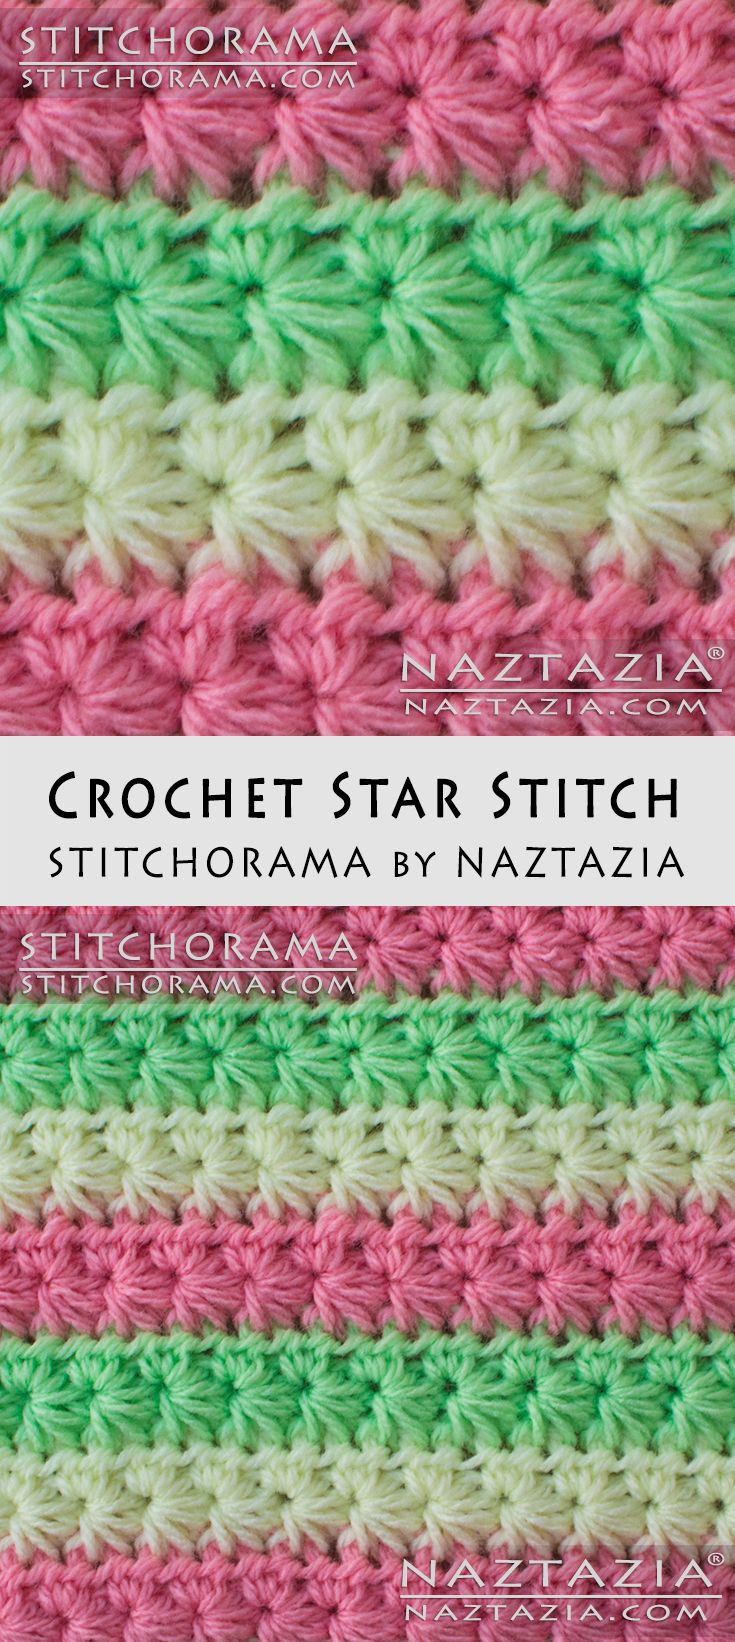 Crochet Star Stitch - Stitchorama by Naztazia Free Pattern & DIY Tutorial YouTube Video by Donna Wolfe